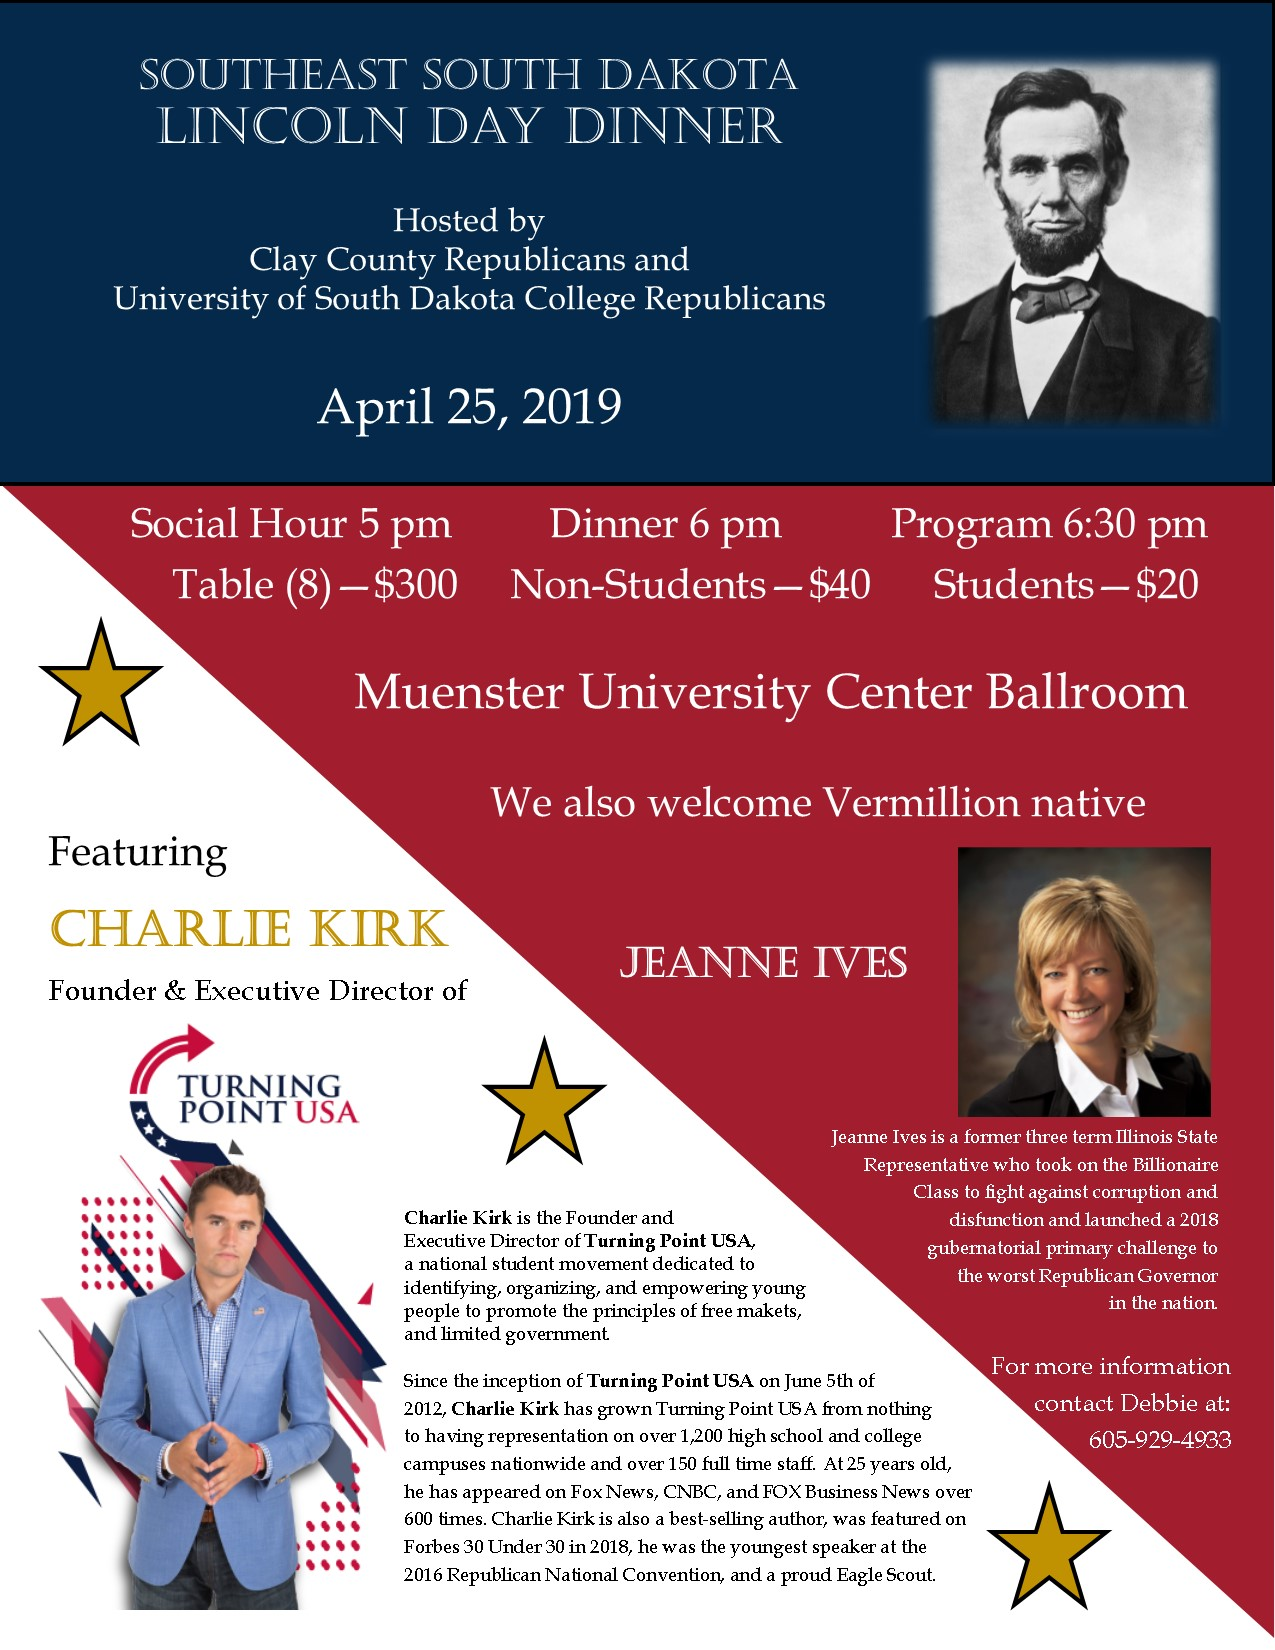 Flyer for Lincoln Day Dinner with Charlie Kirk